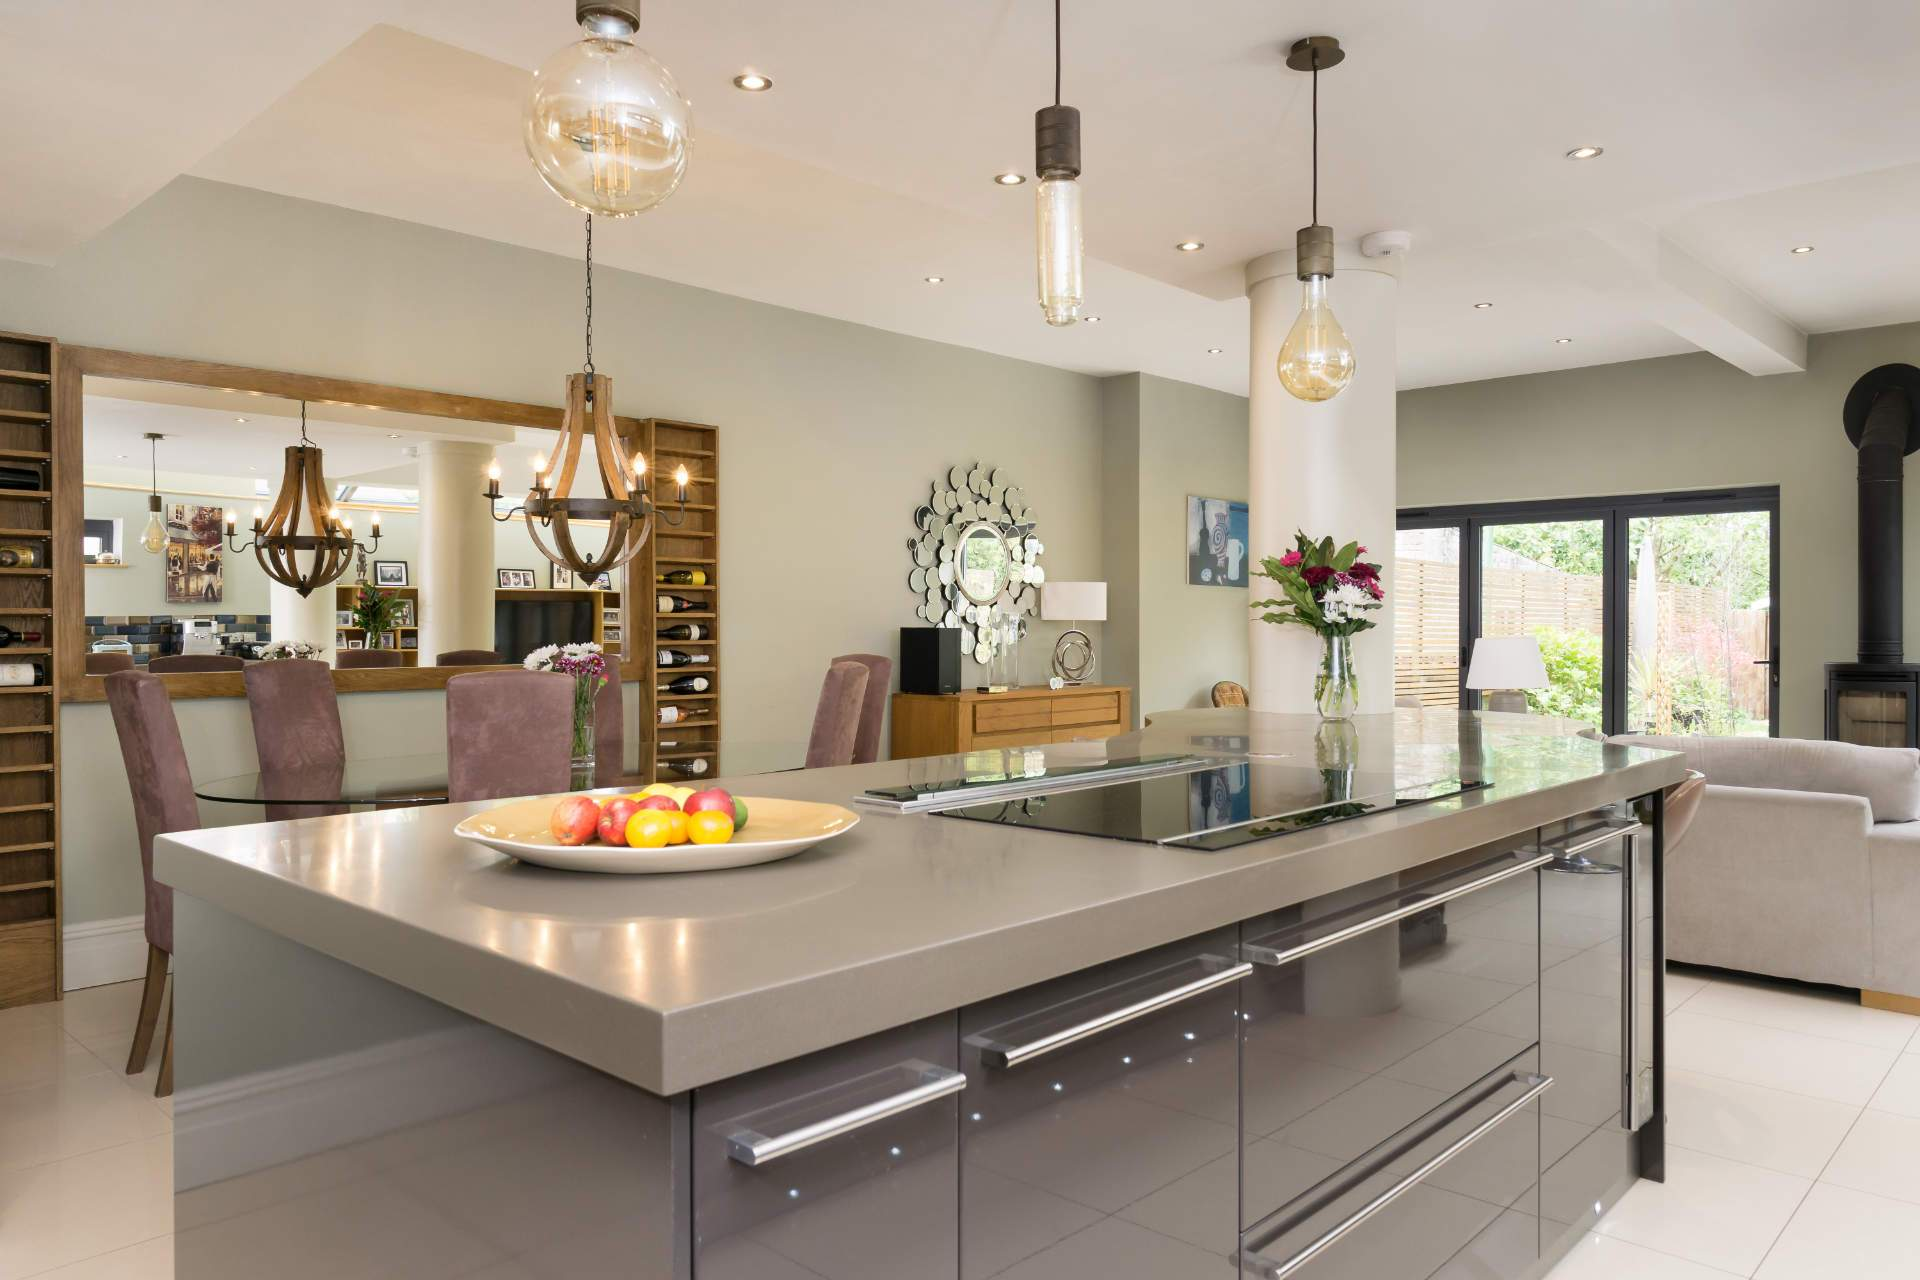 Amazing kitchen island with Corian worktop